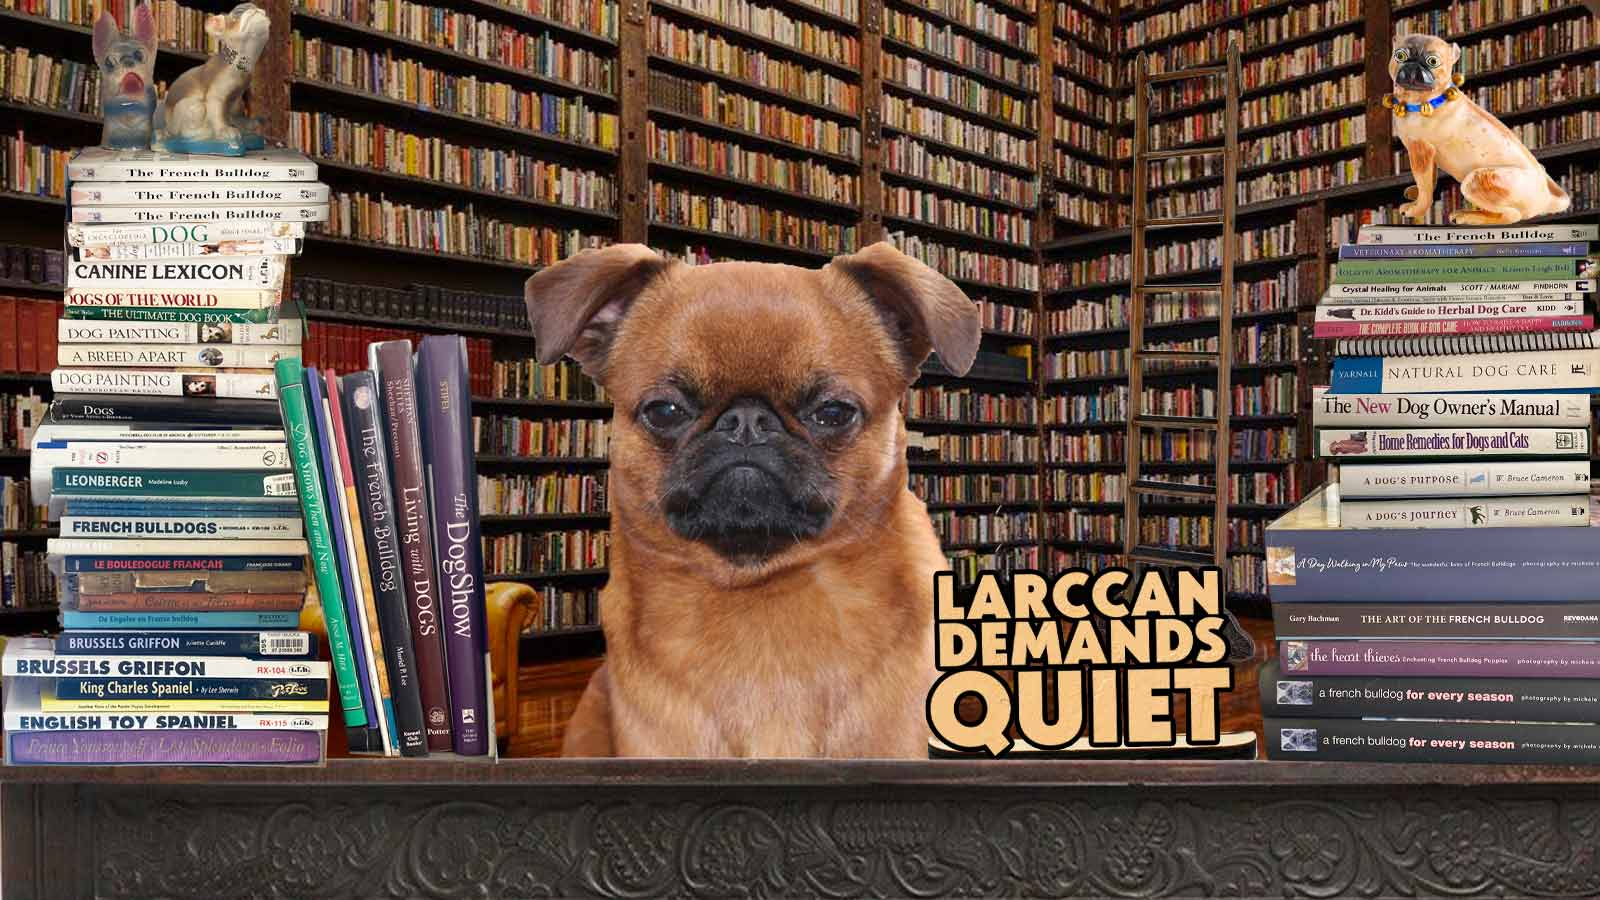 Smooth Brussels griffon library